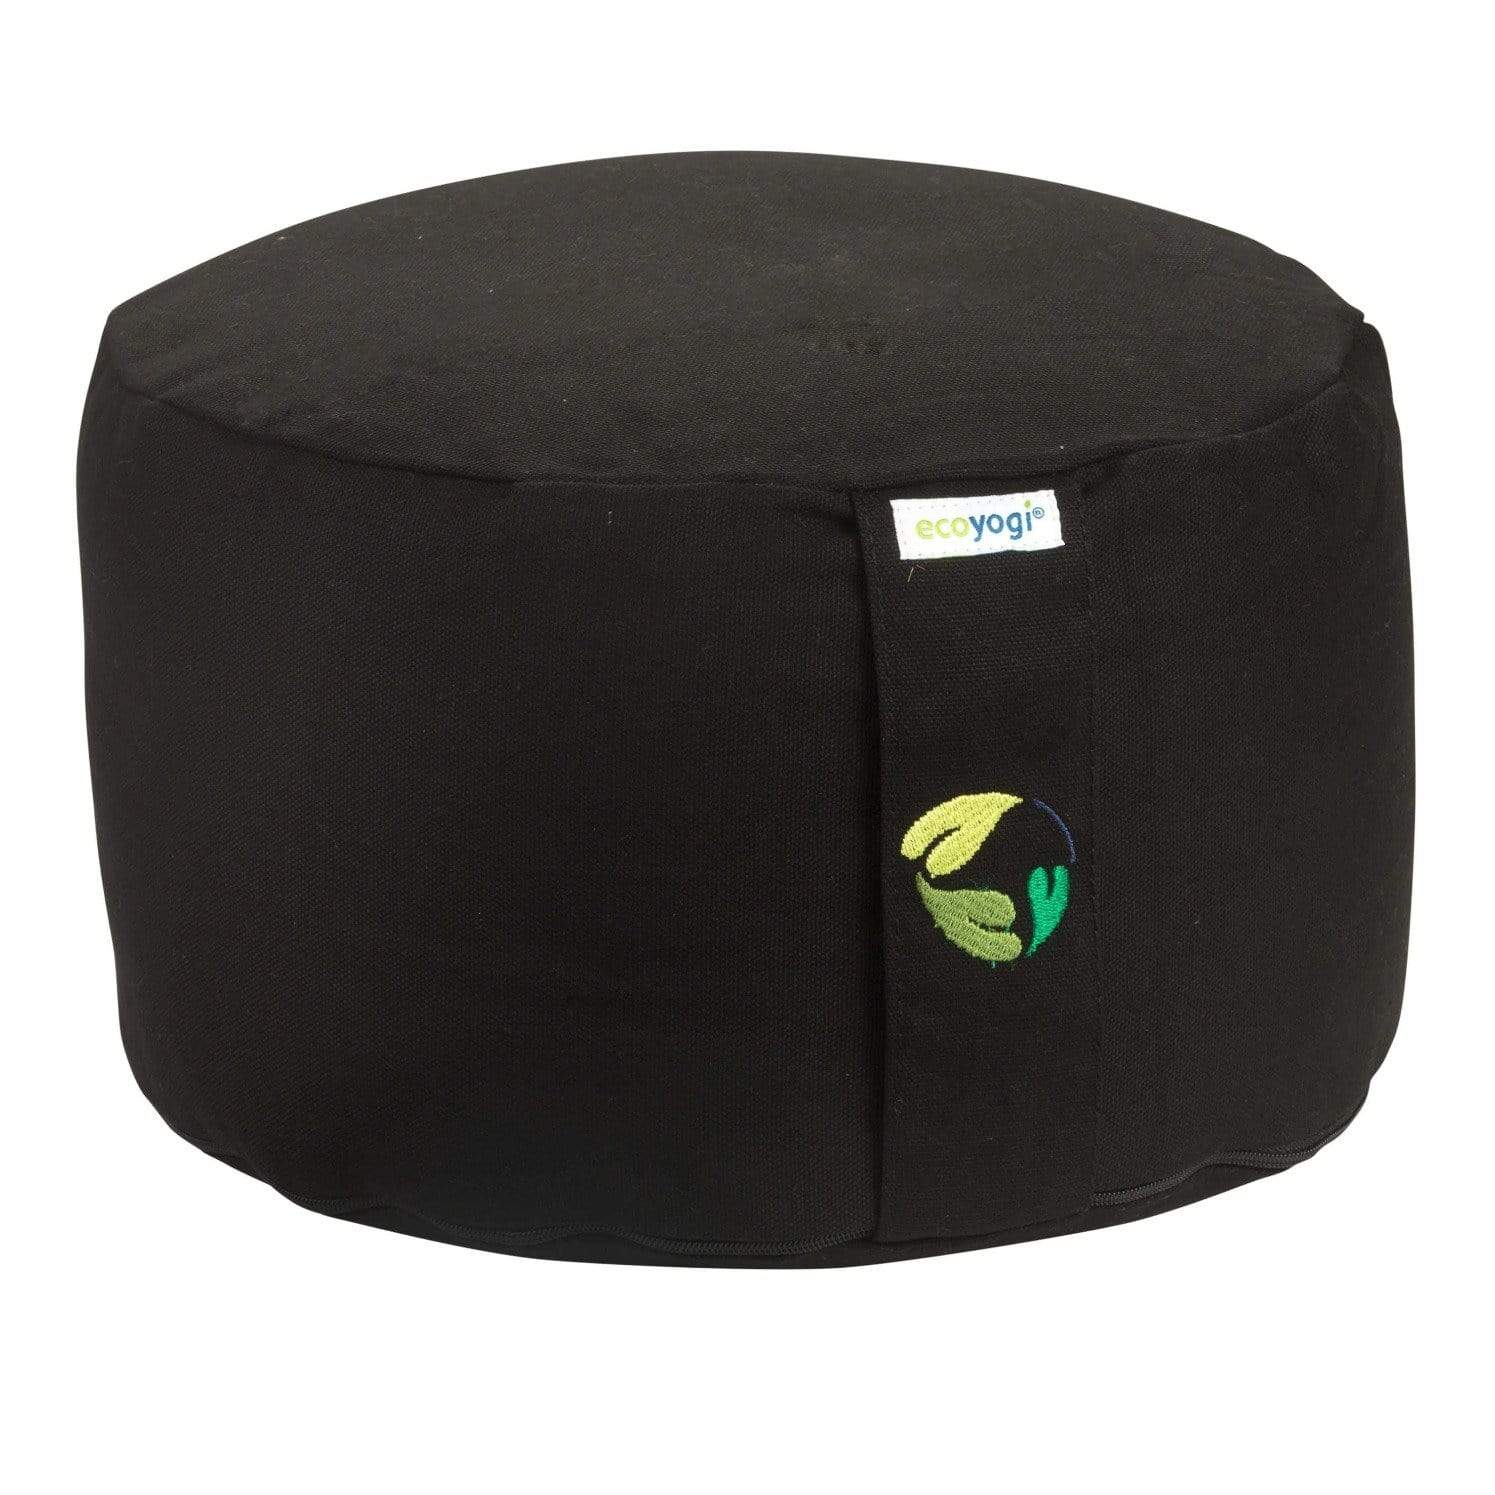 sustainable gifts Ecoyogi Black Organic cotton meditation cushion high - black